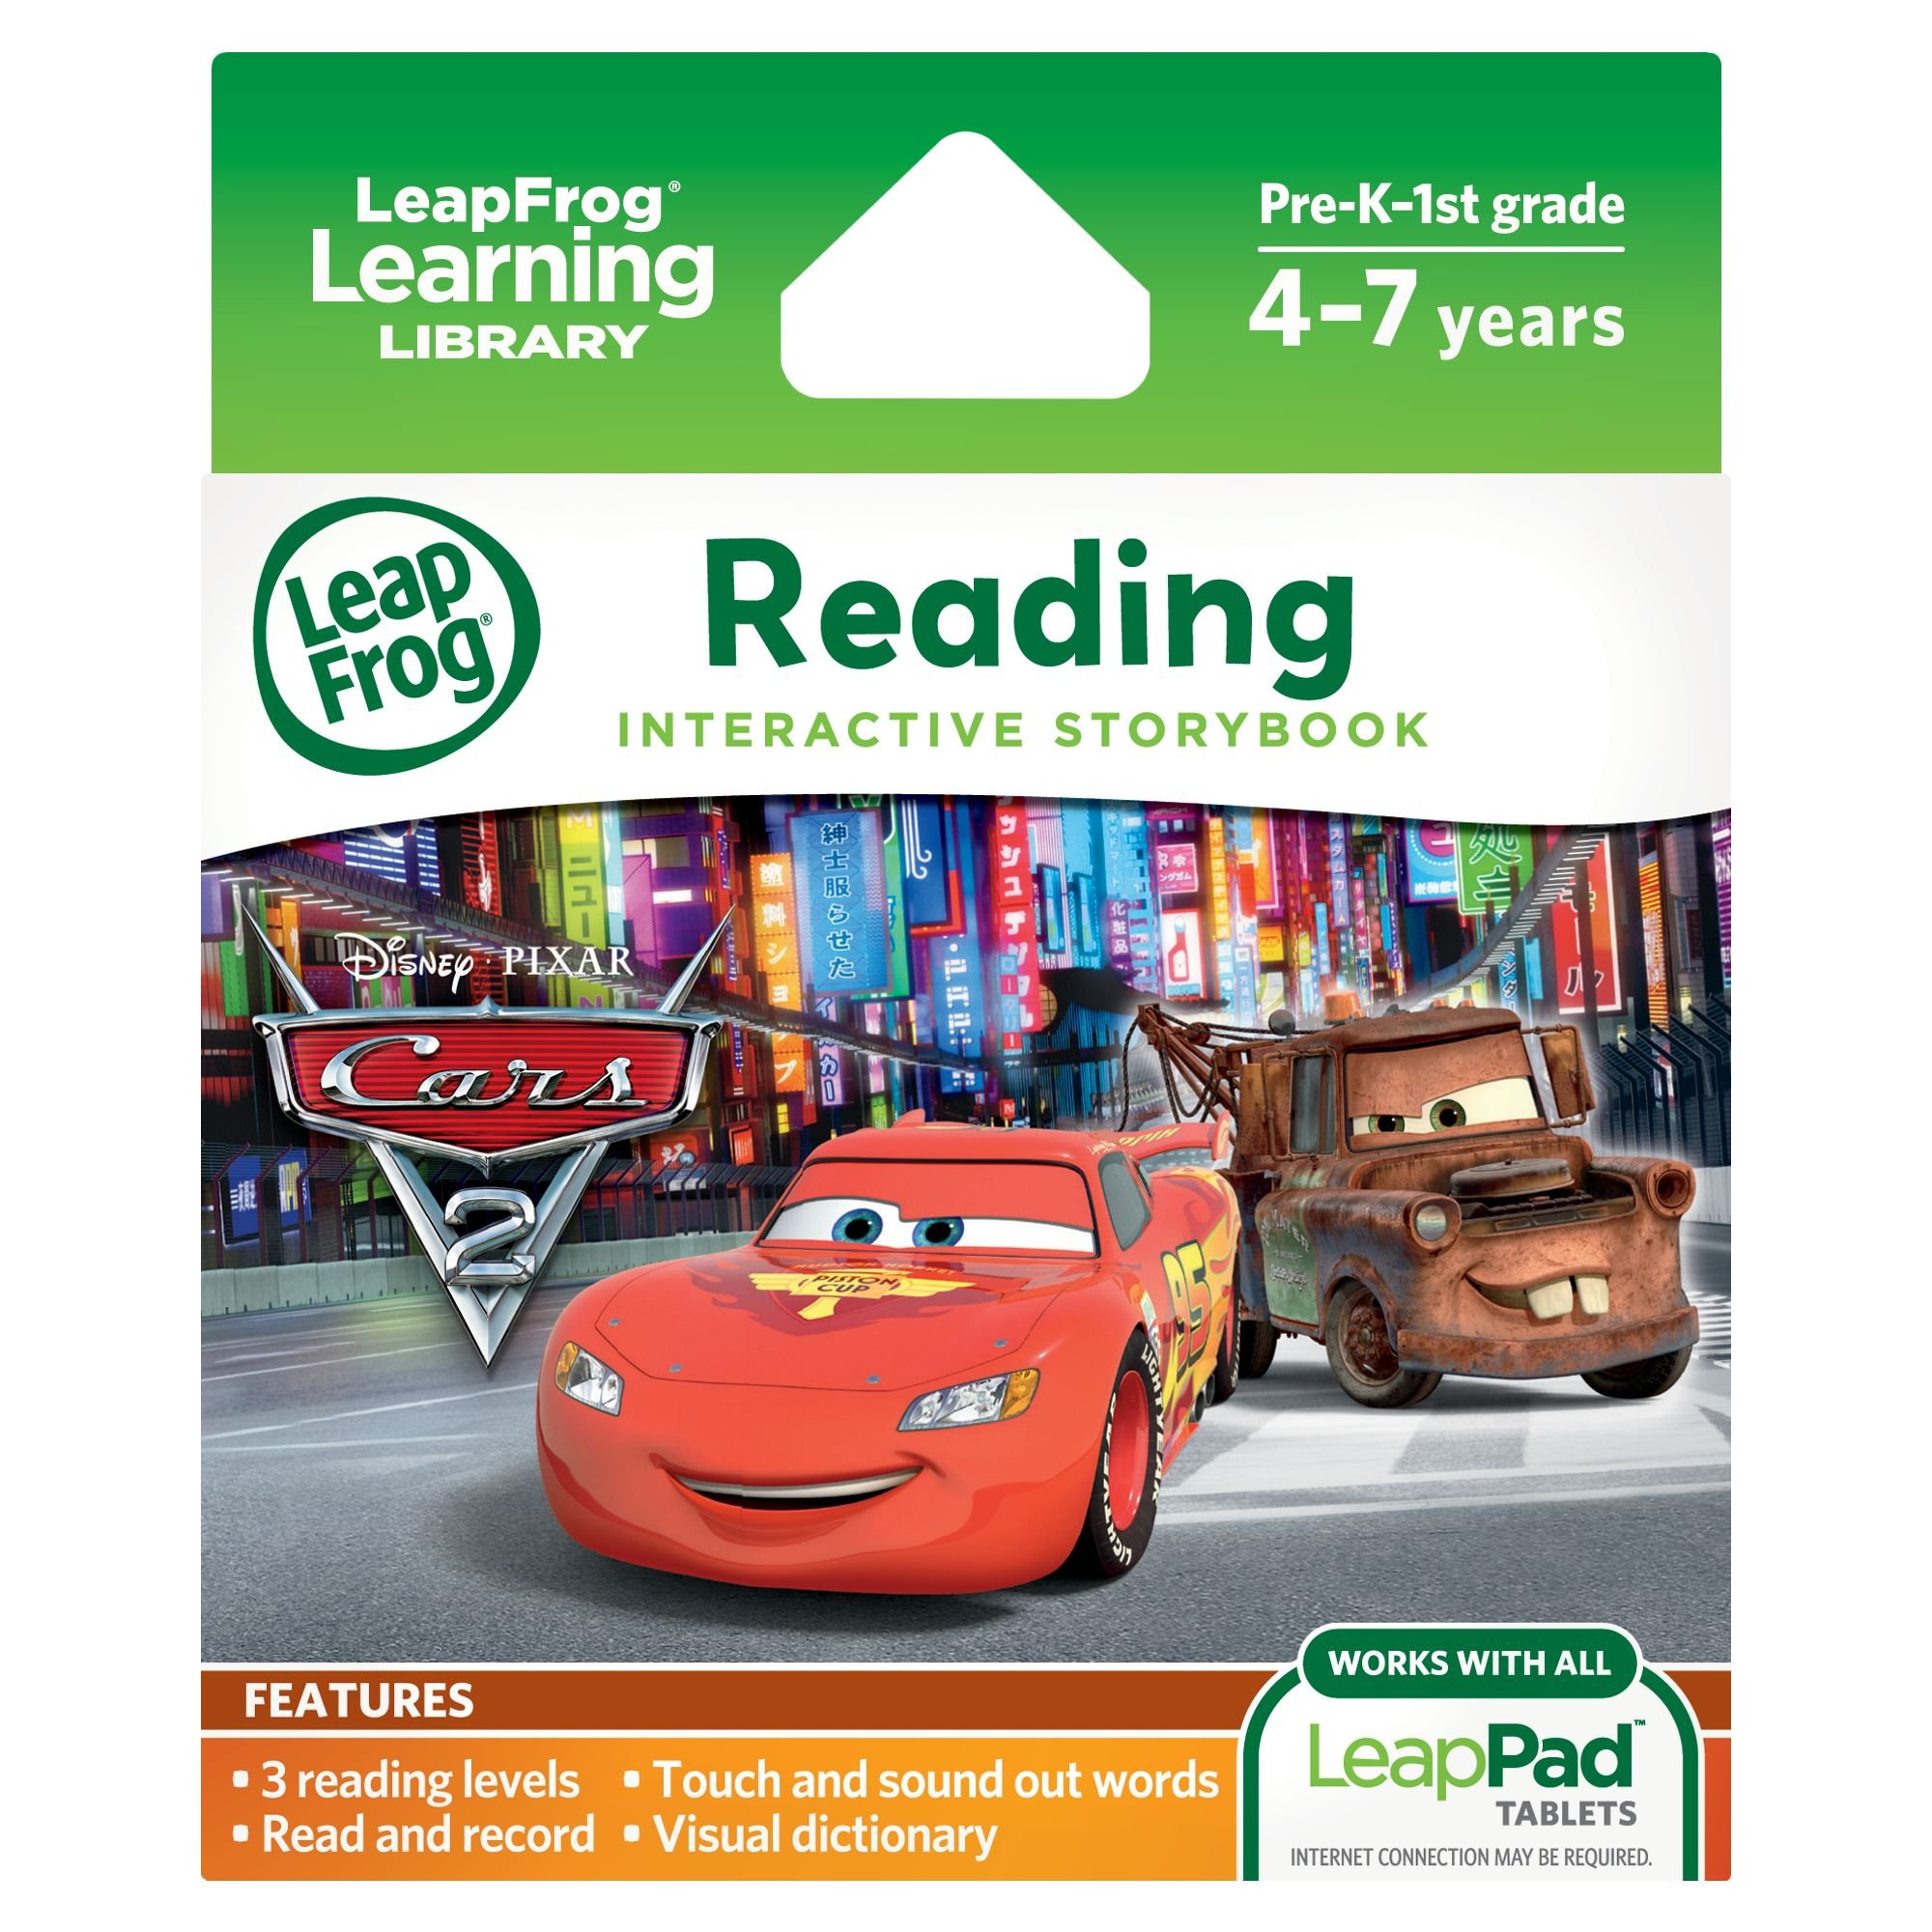 LeapFrog LeapPad Ultra eBook: Disney Pixar Cars 2 (works with all LeapPad Tablets) by LeapFrog